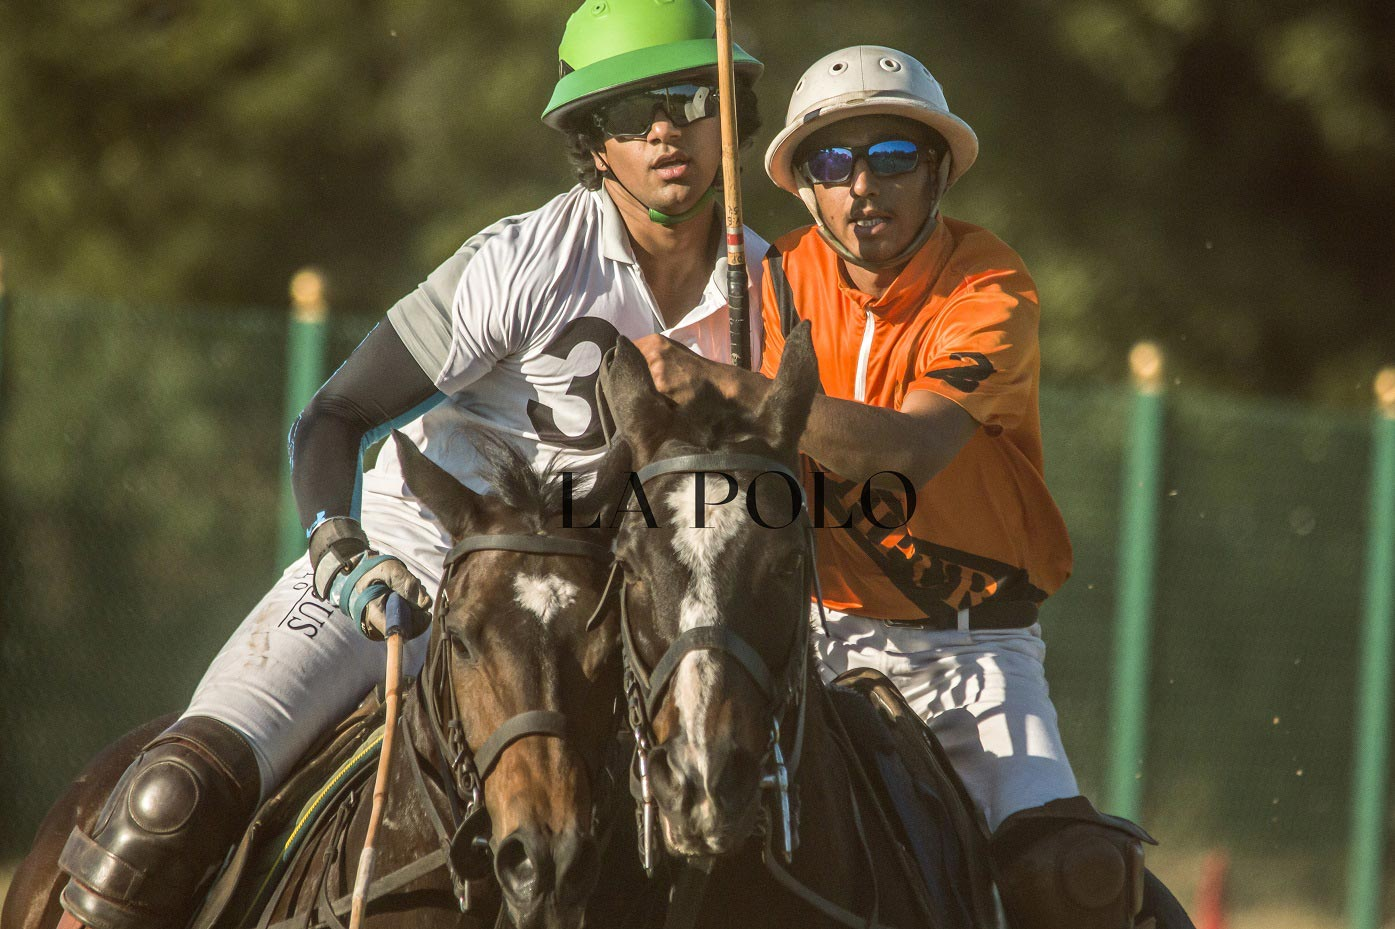 MAYO CLAIMS VICTORY OVER GOHILWAD AT THE JODHPUR POLO CUP-ARENA POLO, TO PLAY MEHRANGARH IN THE FINALS TOMORROW!